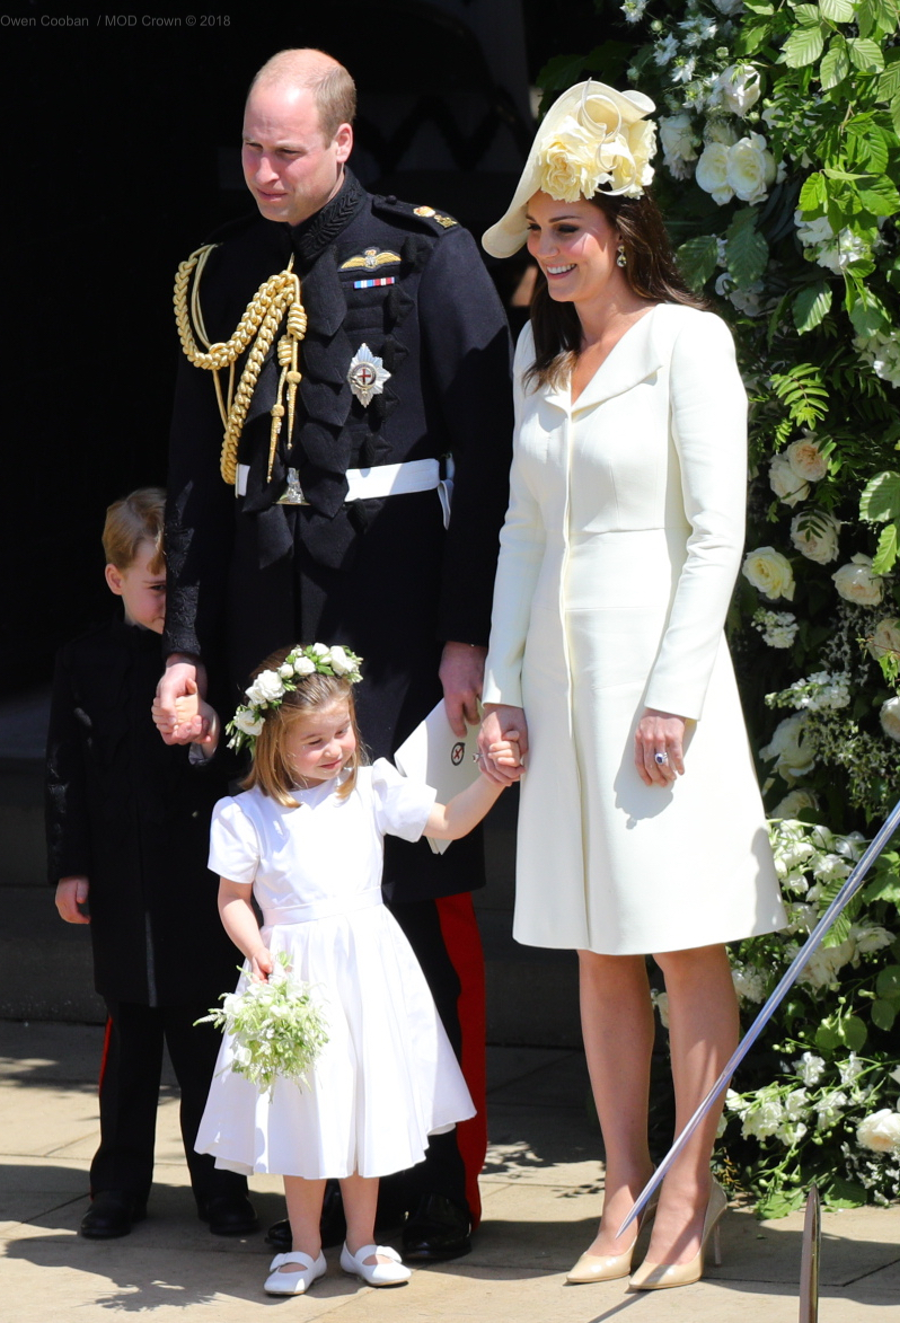 Kate Middleton's outfit from the Royal Wedding